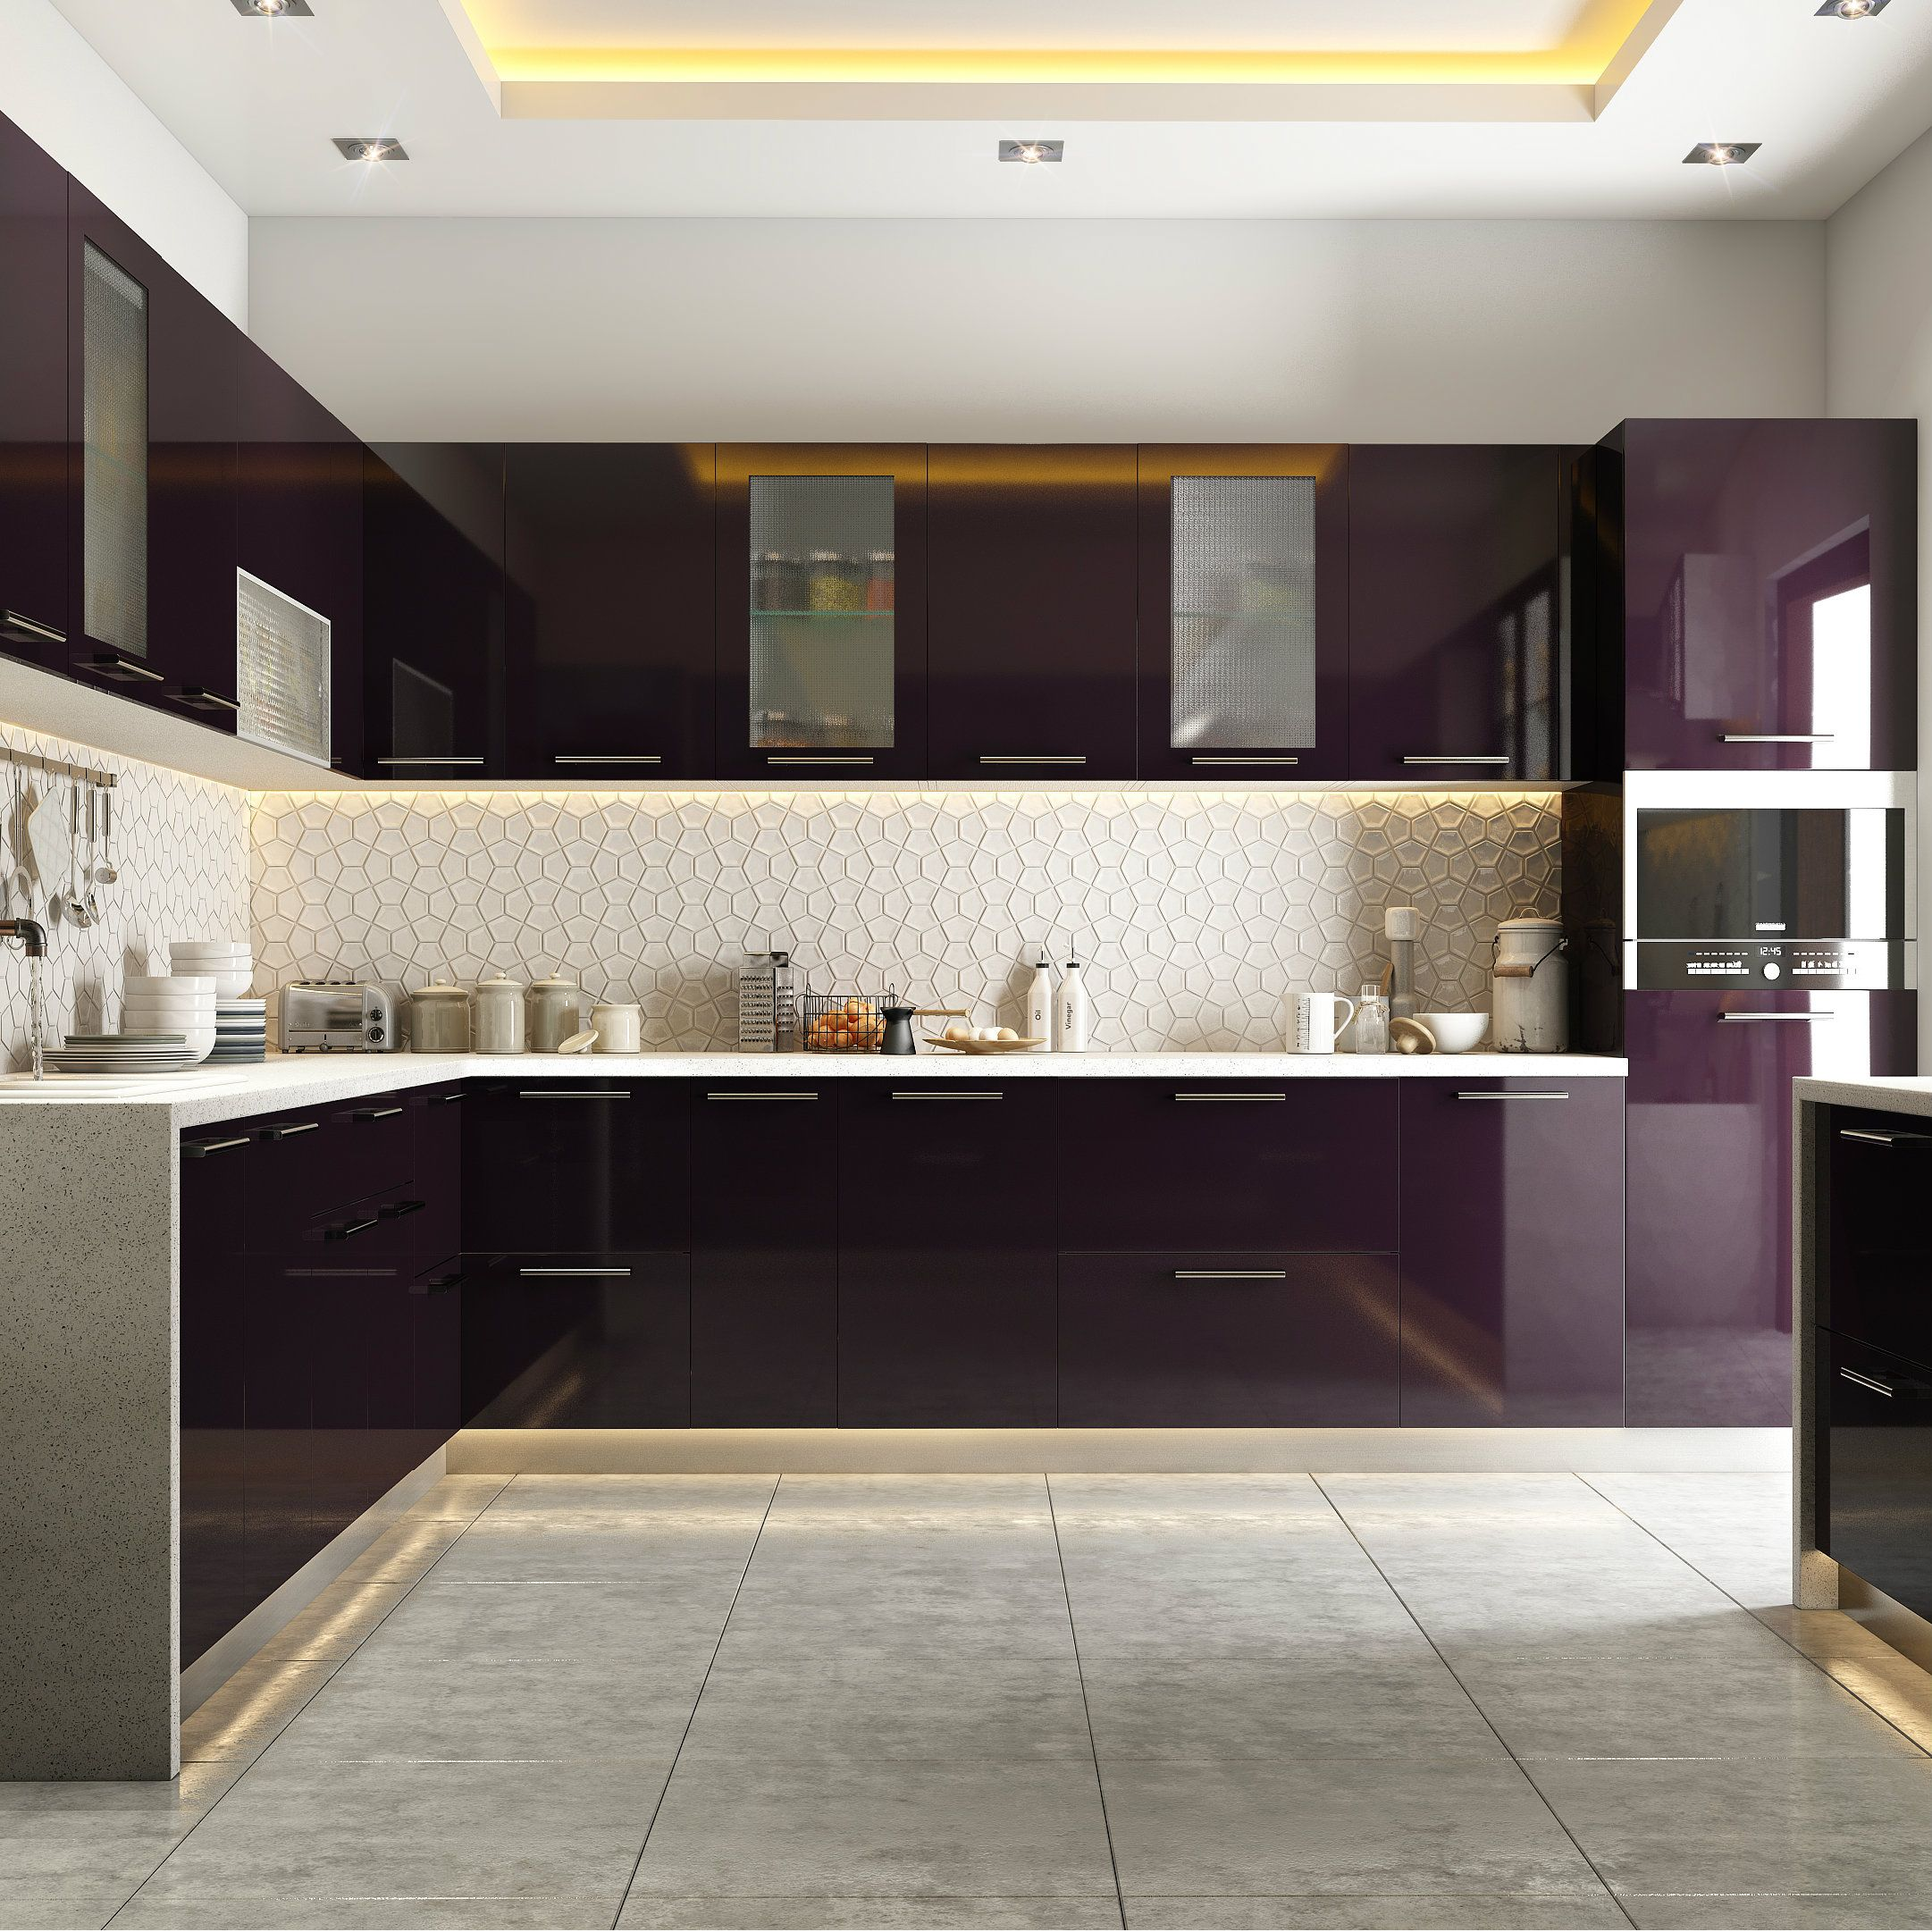 New Kitchen Design Basics Chicken Stock Pin On A Modular 5 Reasons Why Designs Are The Latest Trend In Home Decor